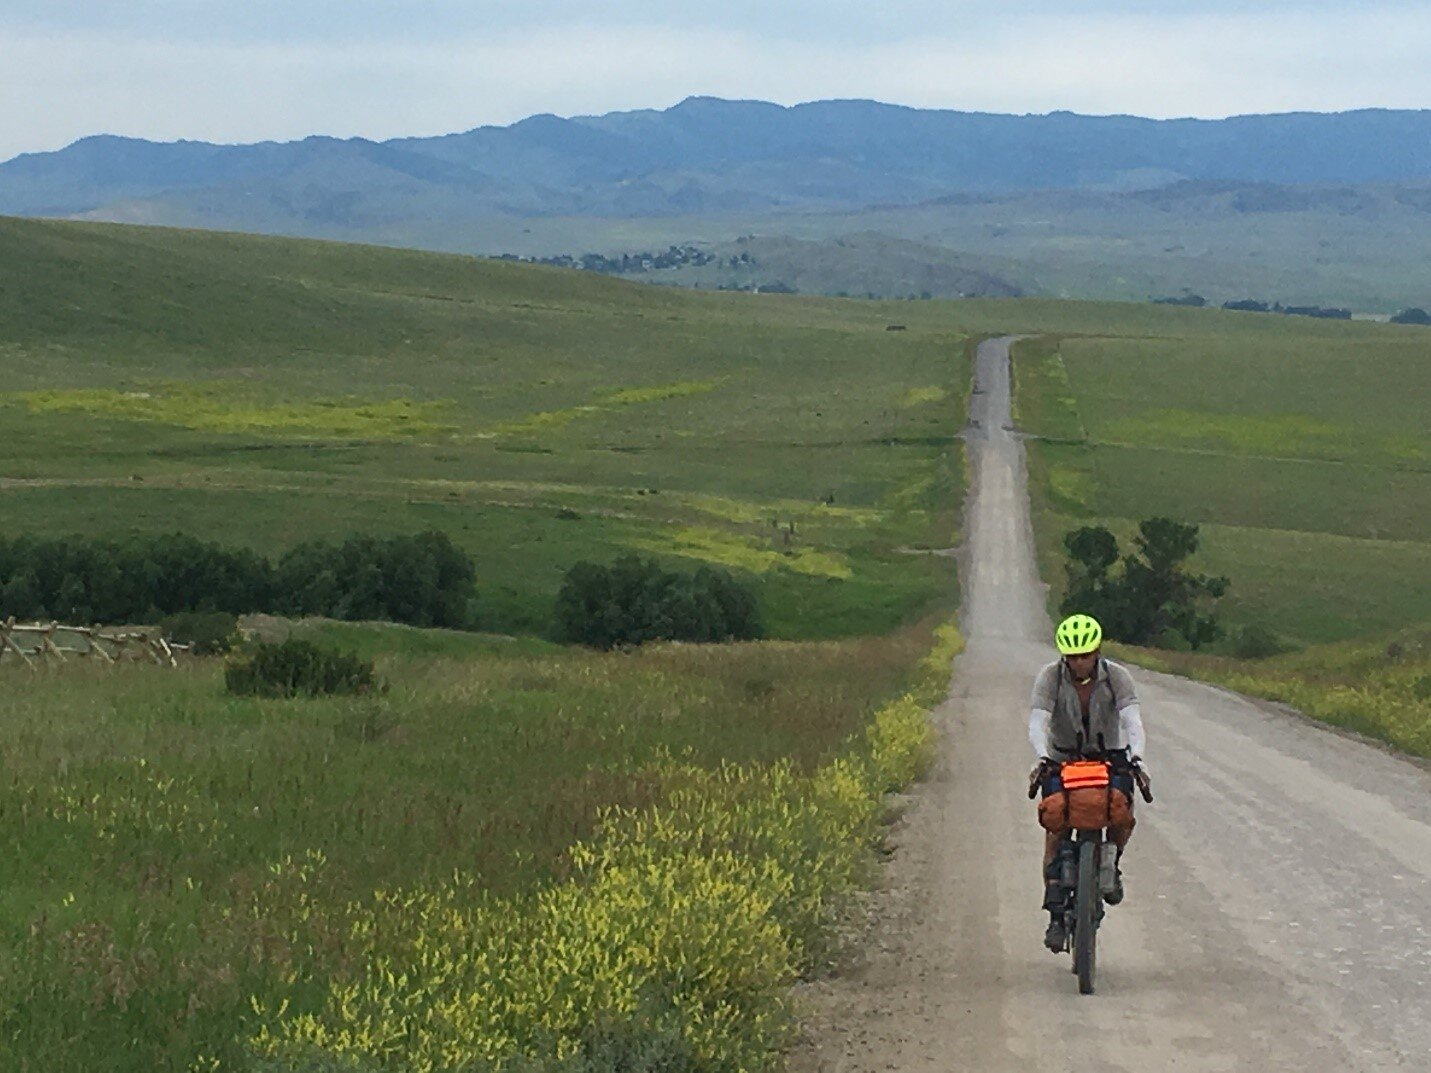 Riding through farm country on the north end of the GYE